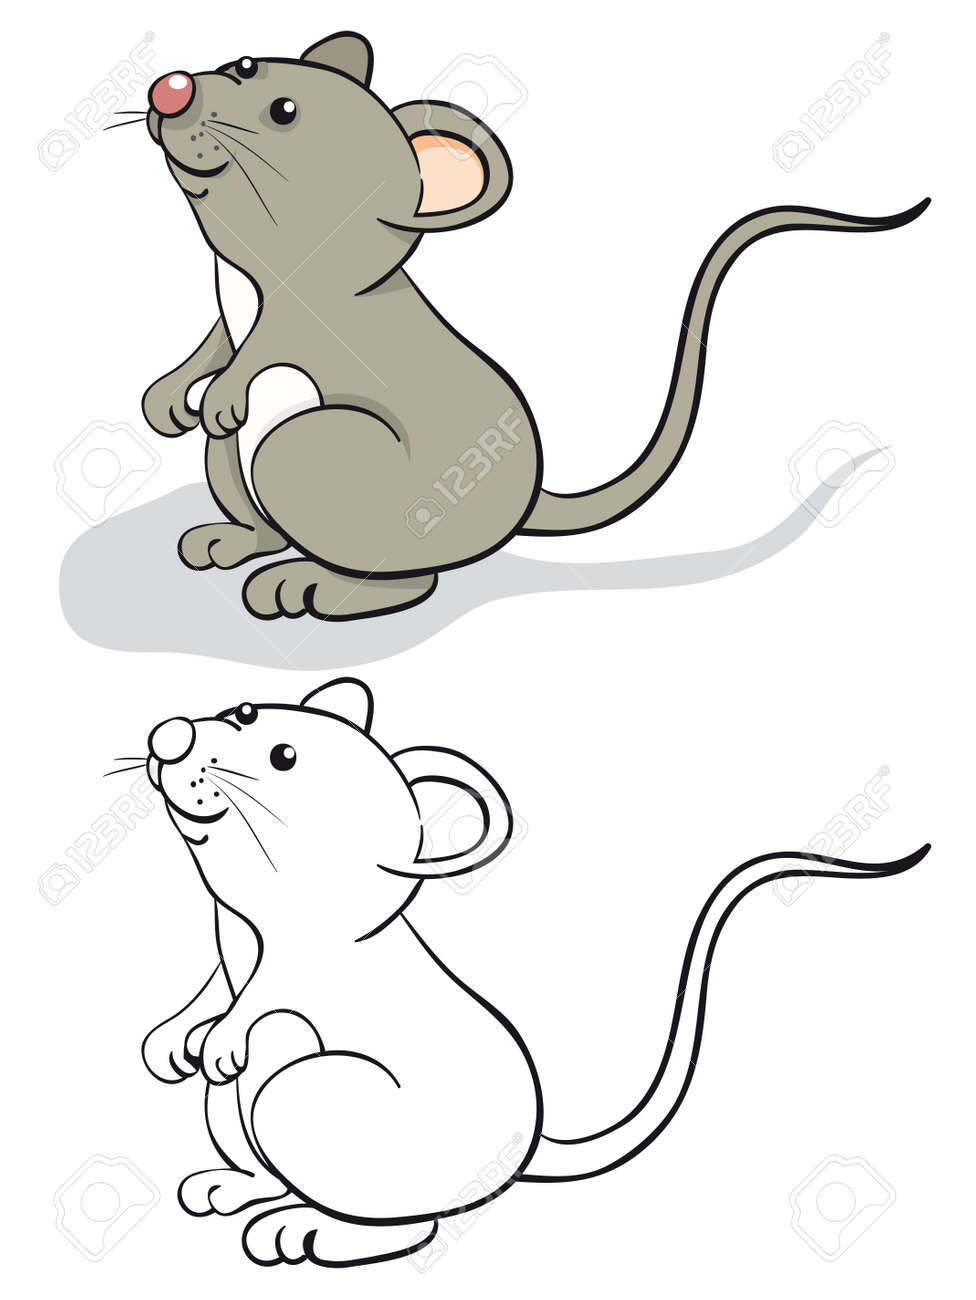 fun mouse color and contour stock vector 9934187